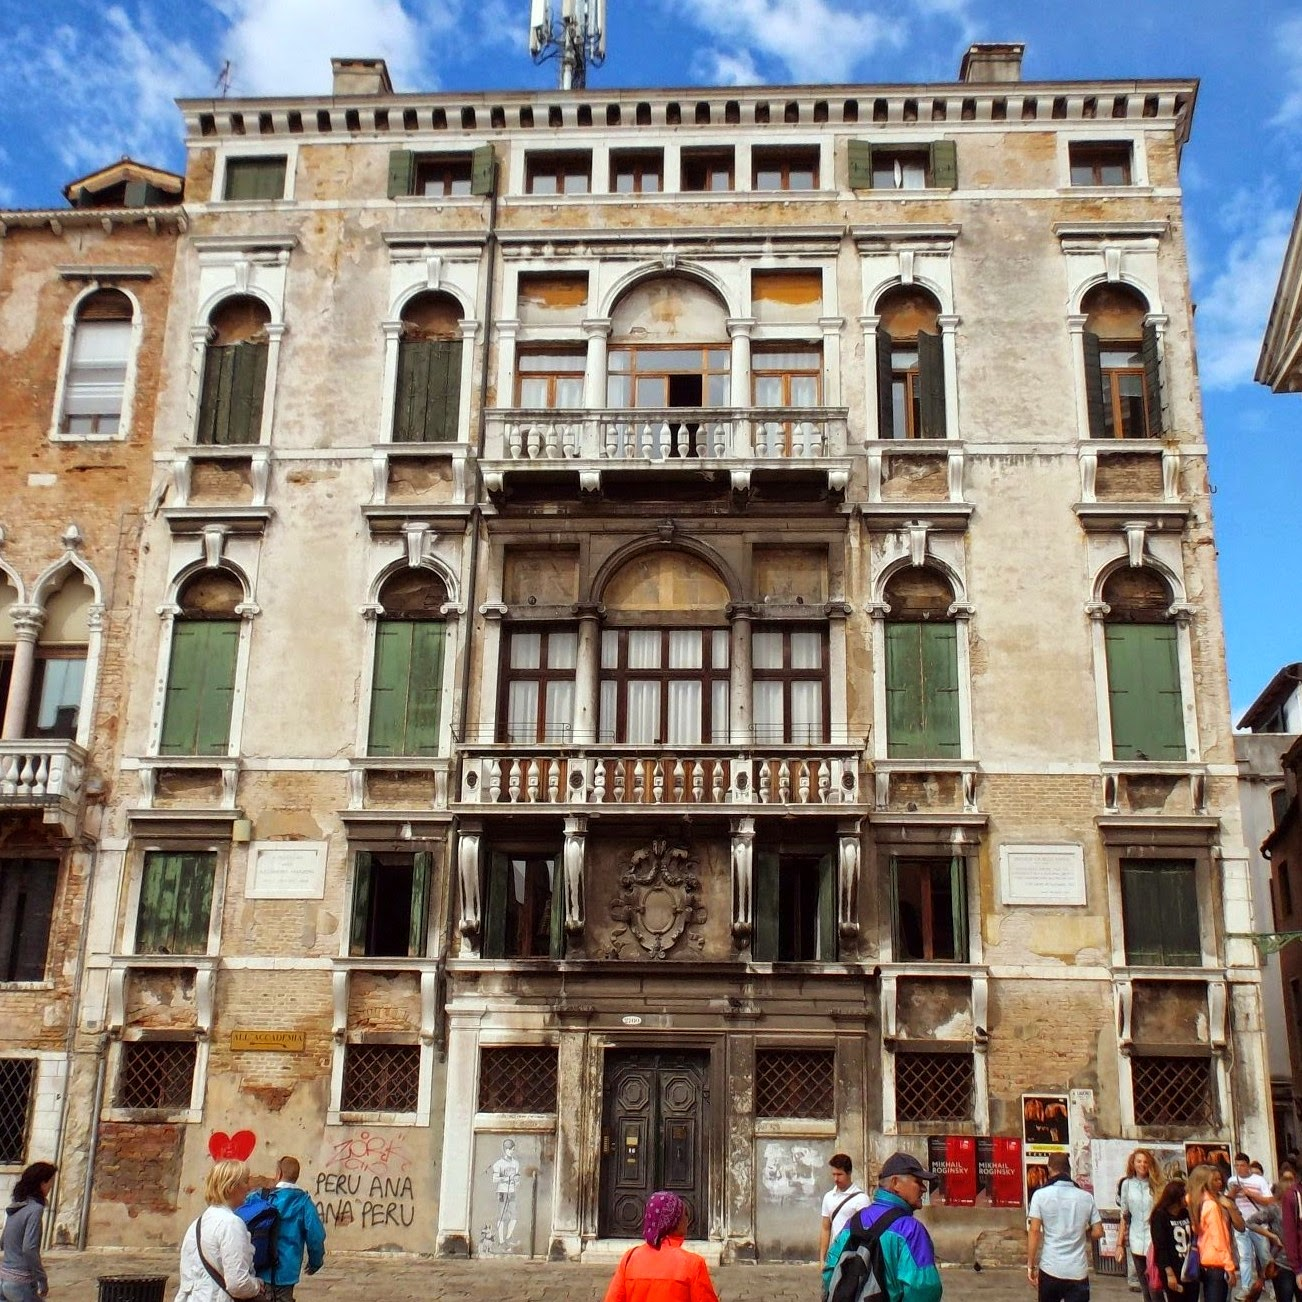 Palazzo Bellavite in Venice, once the home of the poet, Giorgio Baffo.